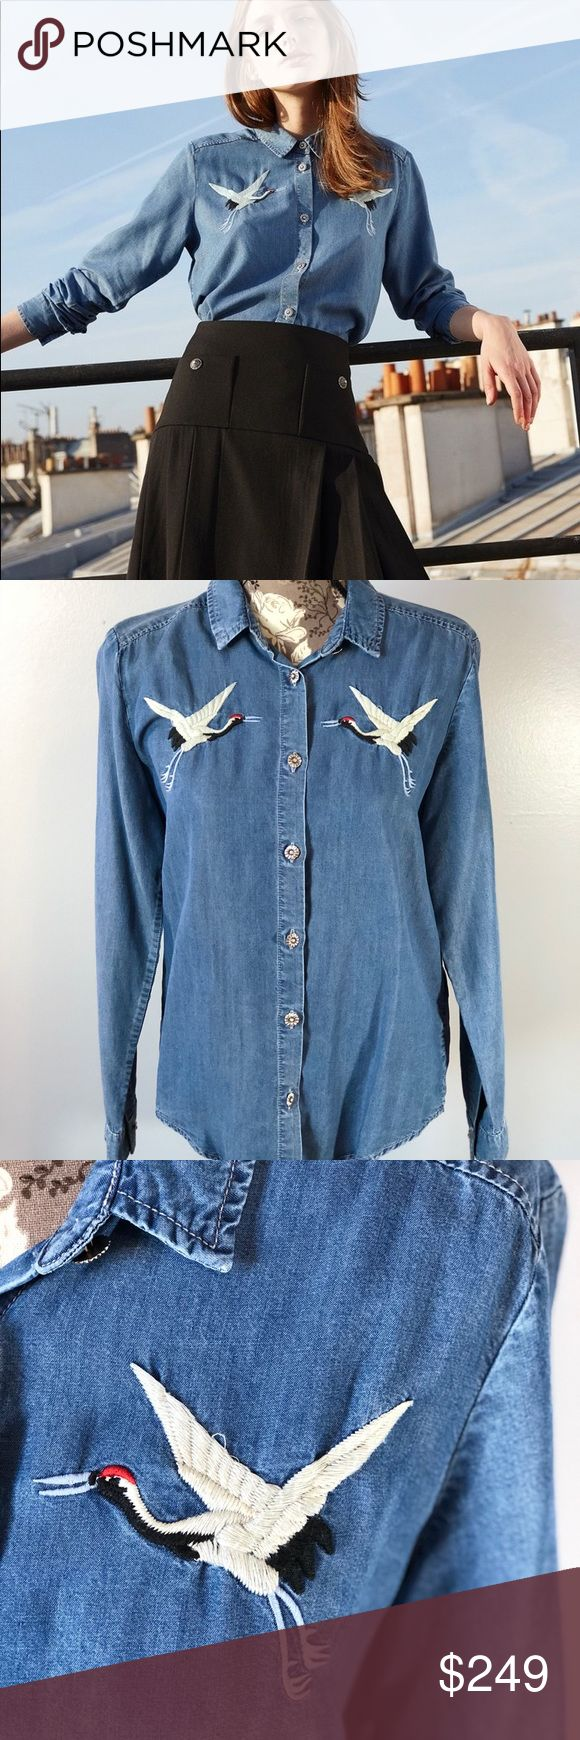 The Kooples Denim Embroidered Button Down Top Brand new! Comes from a smoke free home. Couple of threads loose as pictured The Kooples Tops